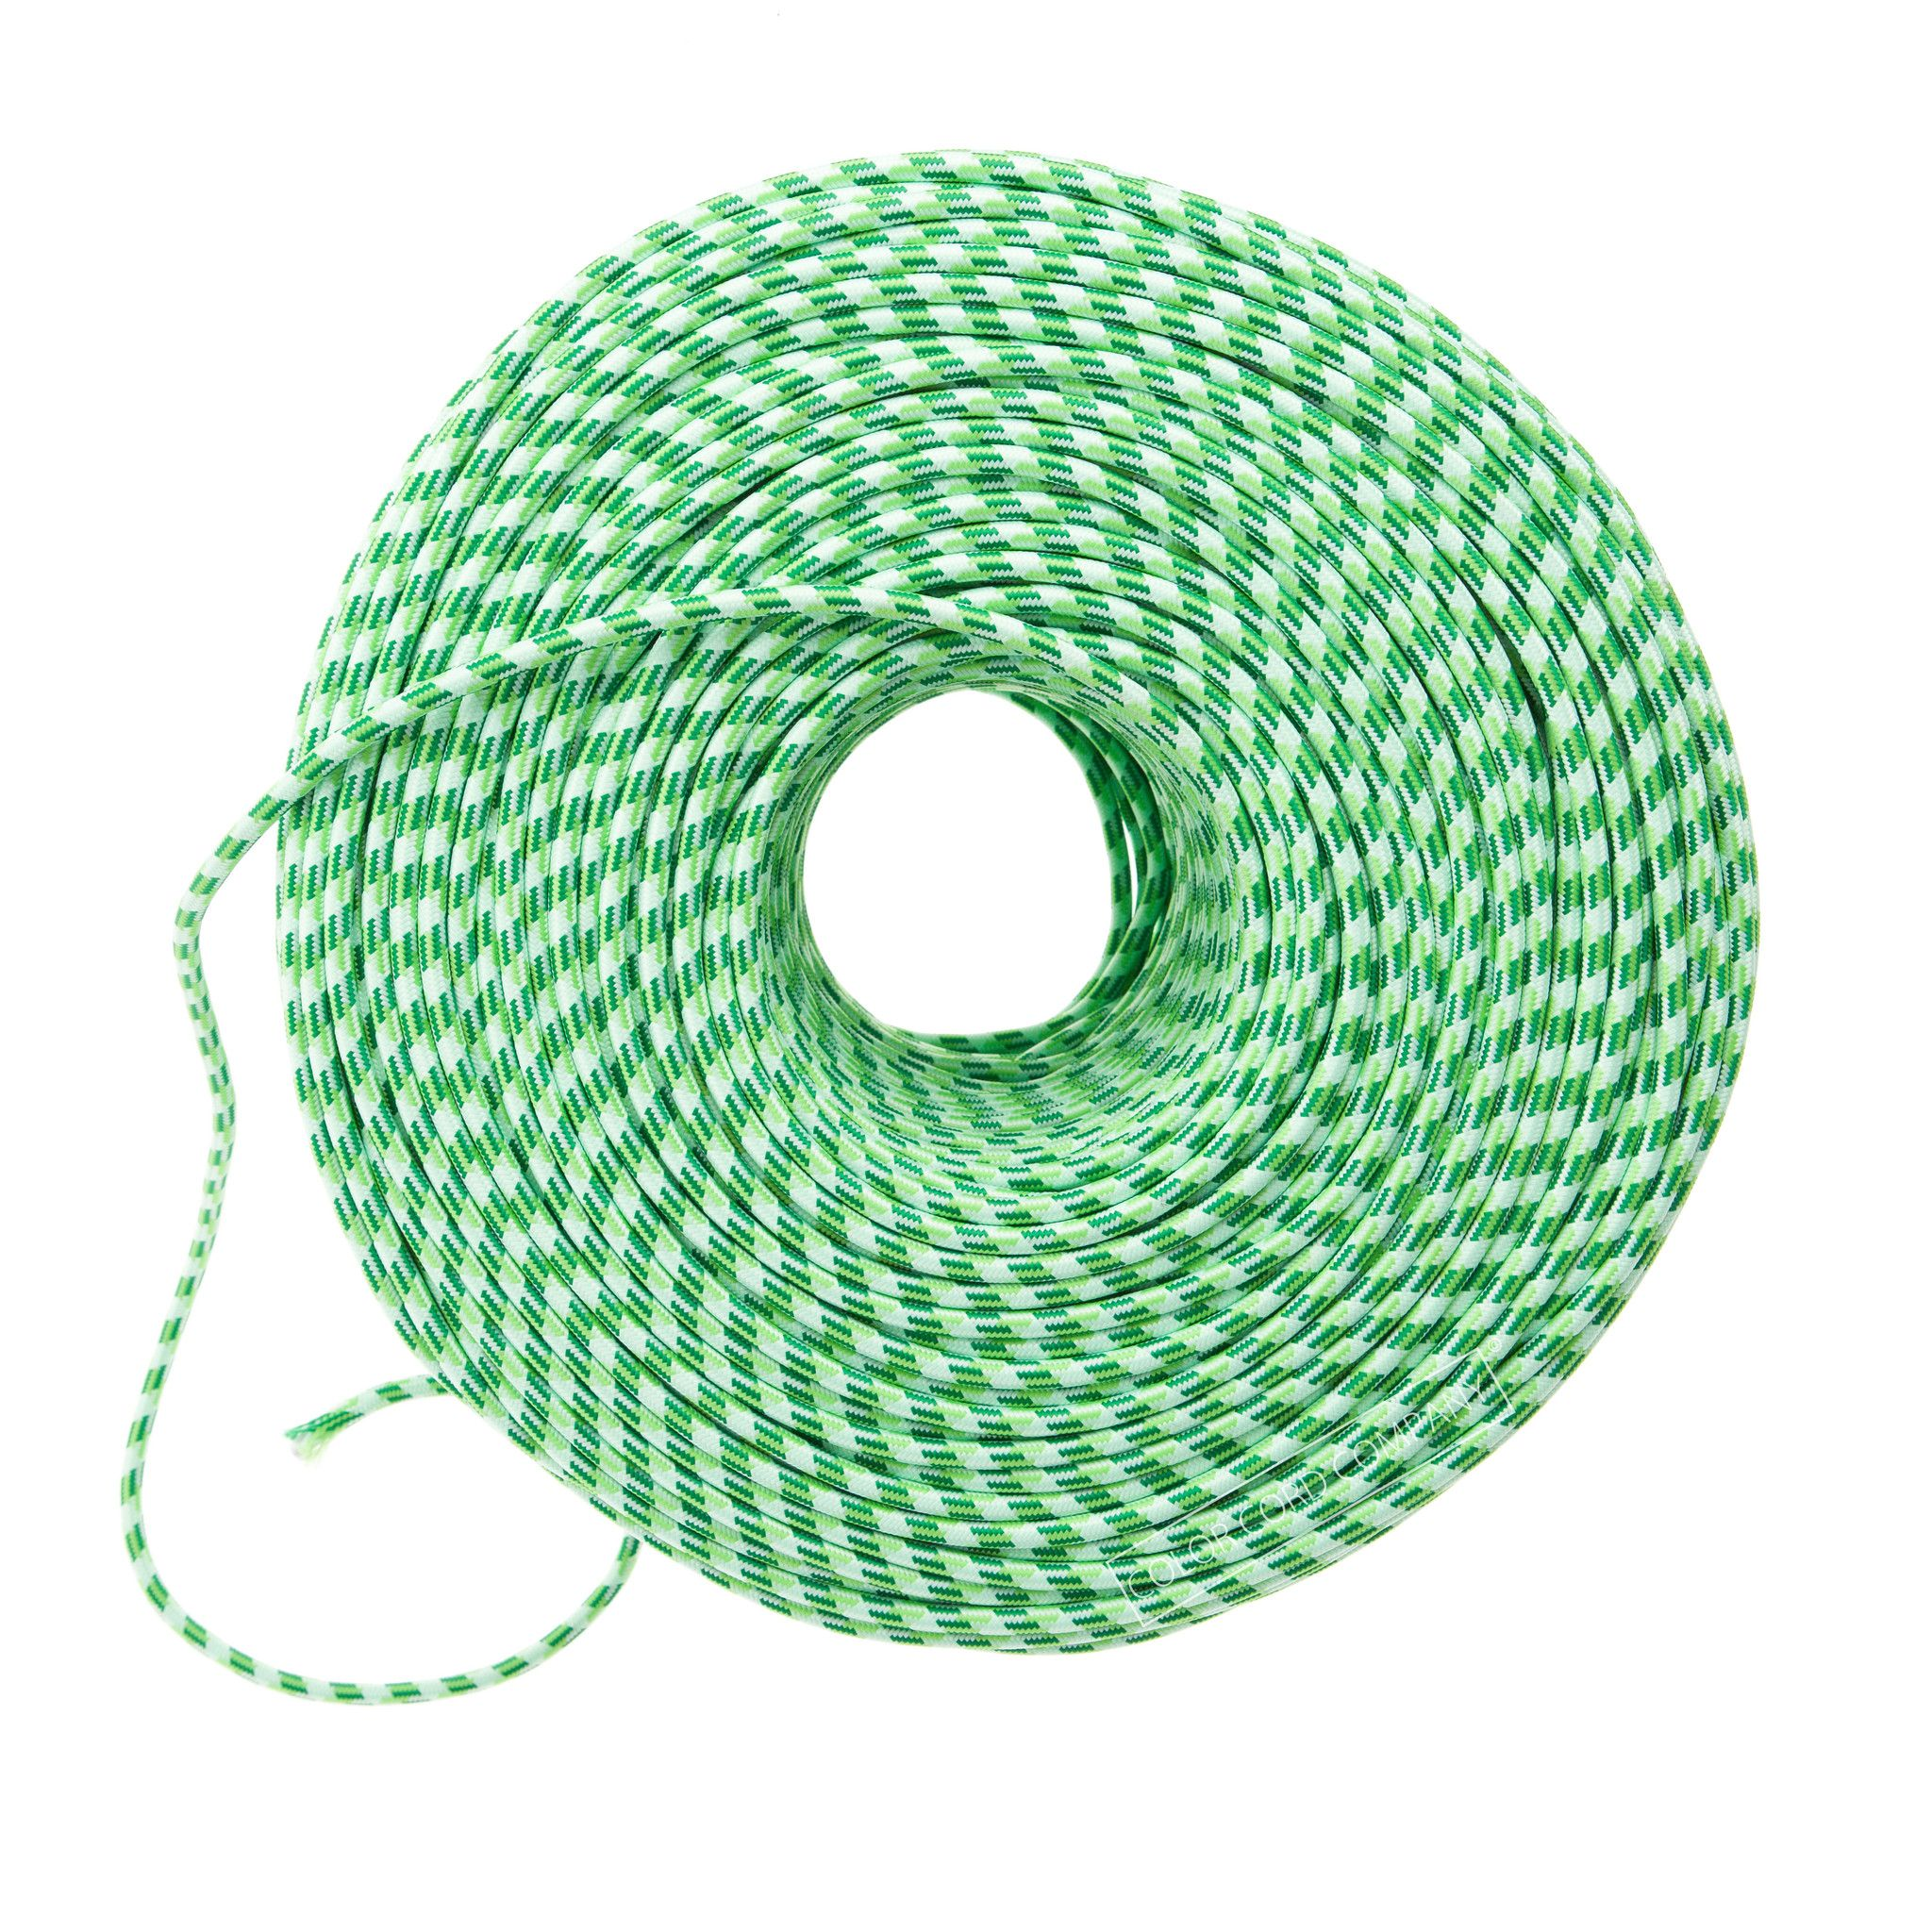 Cloth Covered Wire - Green Argyle | Color Cord Company